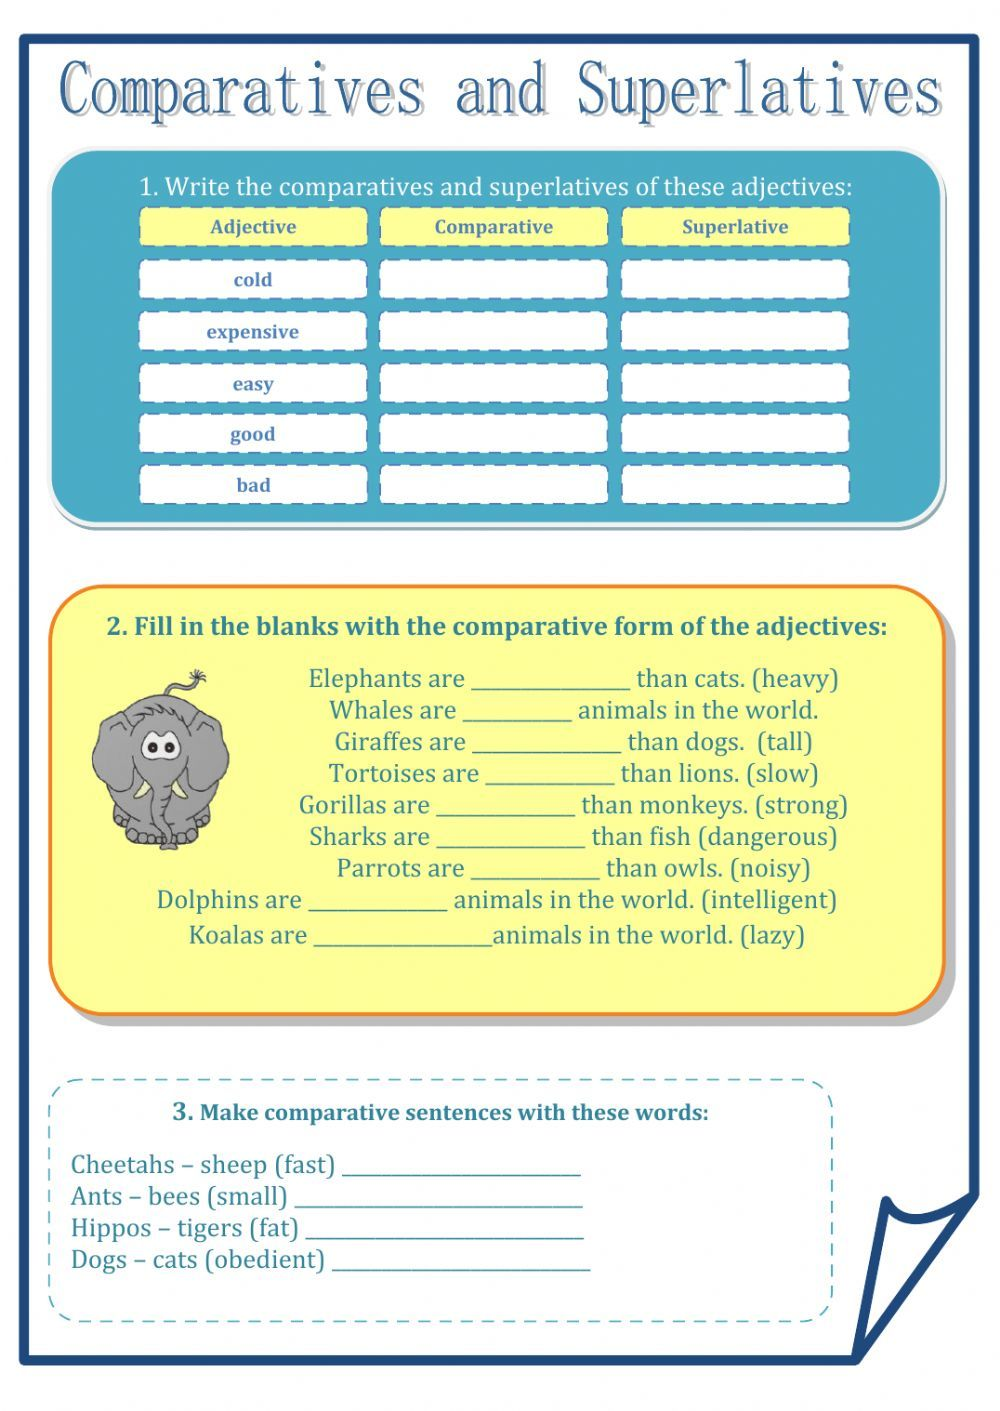 Comparatives and superlatives interactive and downloadable worksheet ...